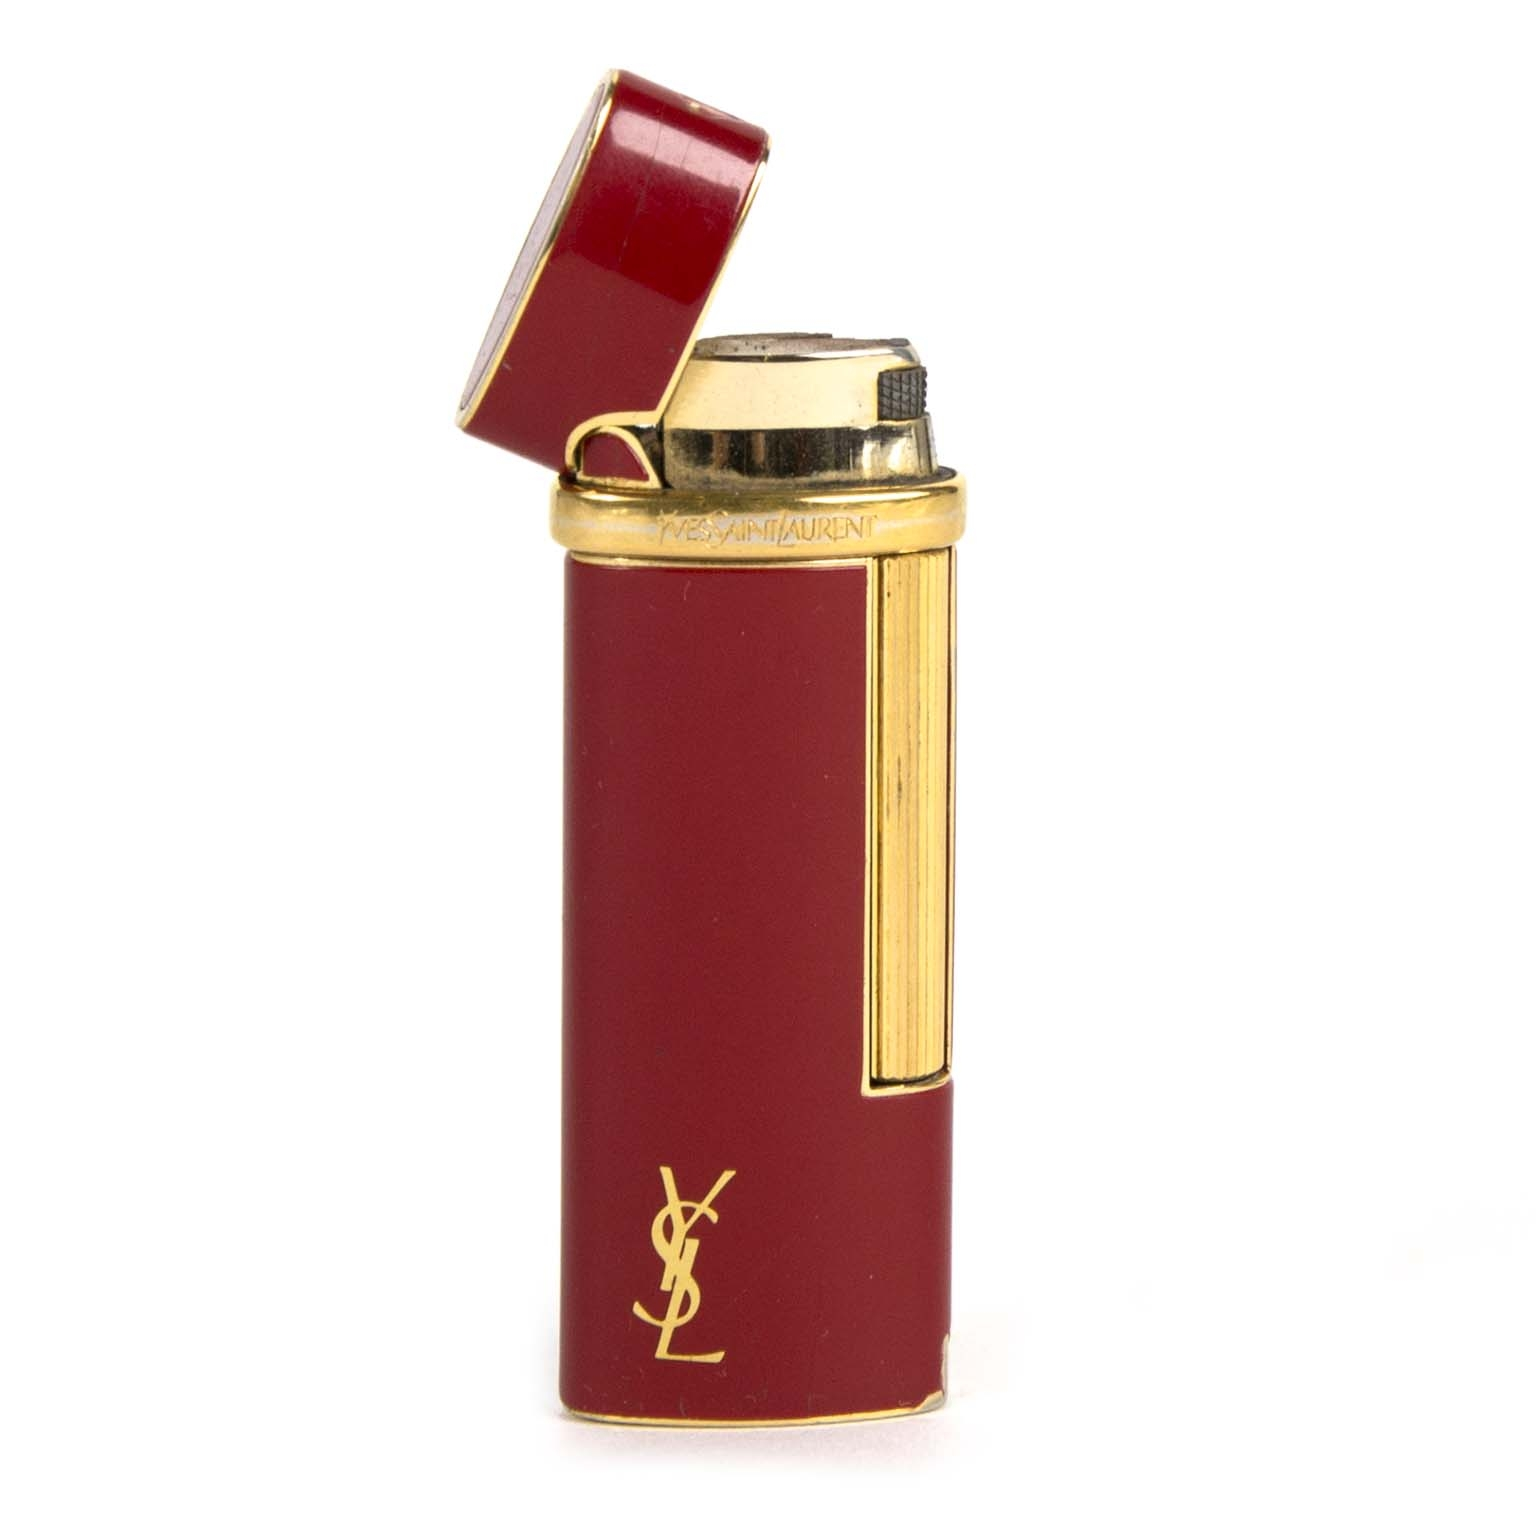 yves saint laurent red lighter now for sale at labellov vintage fashion webshop belgium